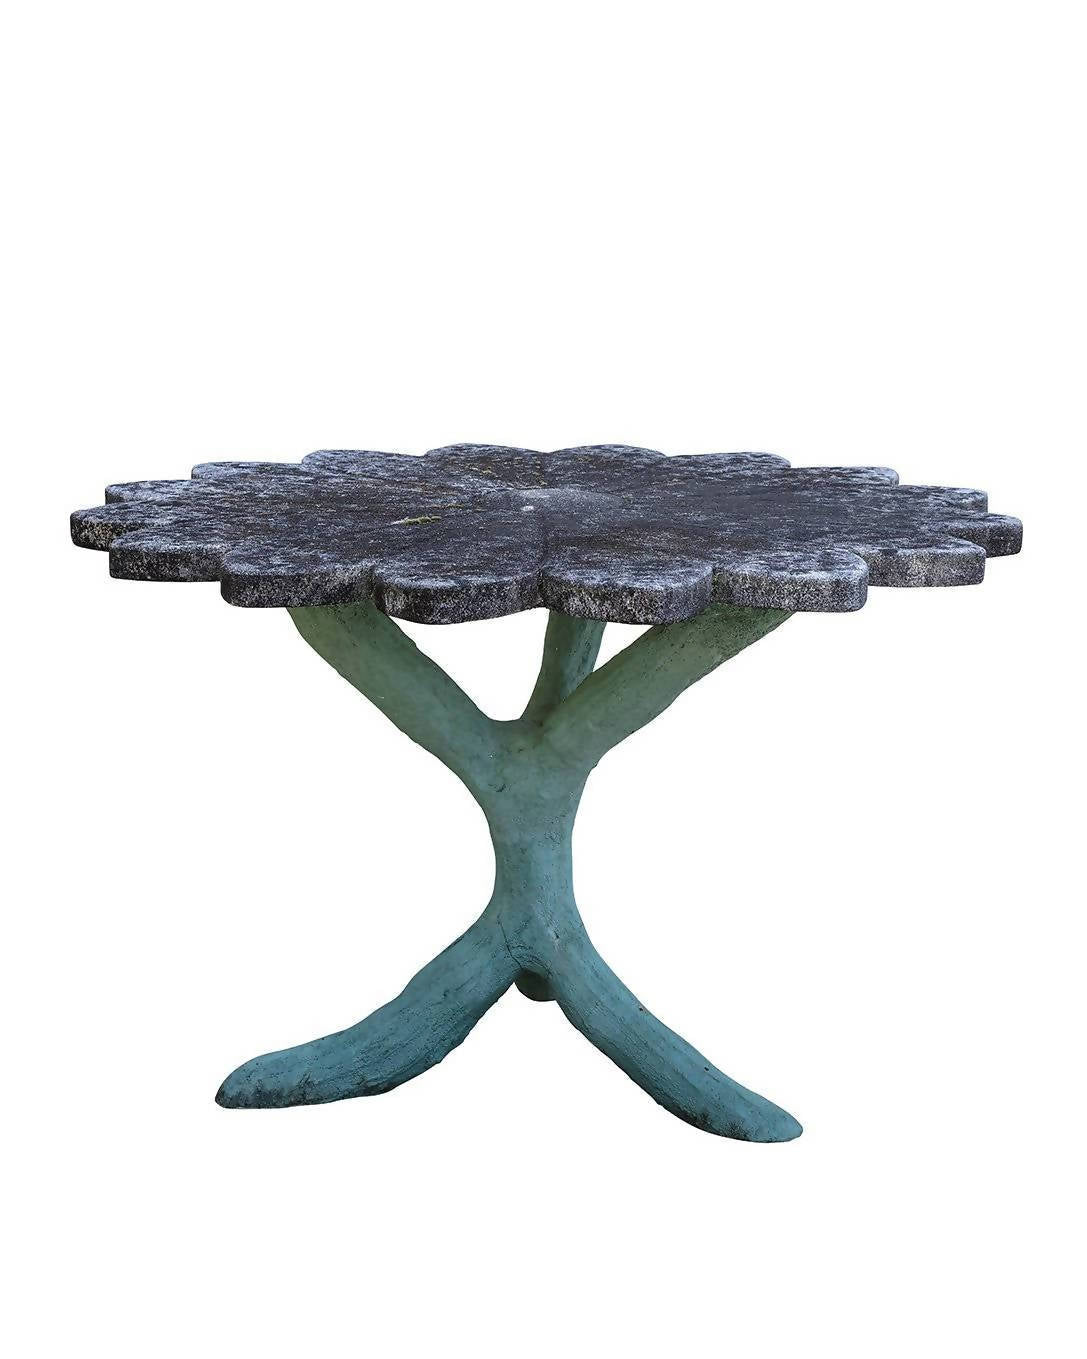 Flower-shaped stone table